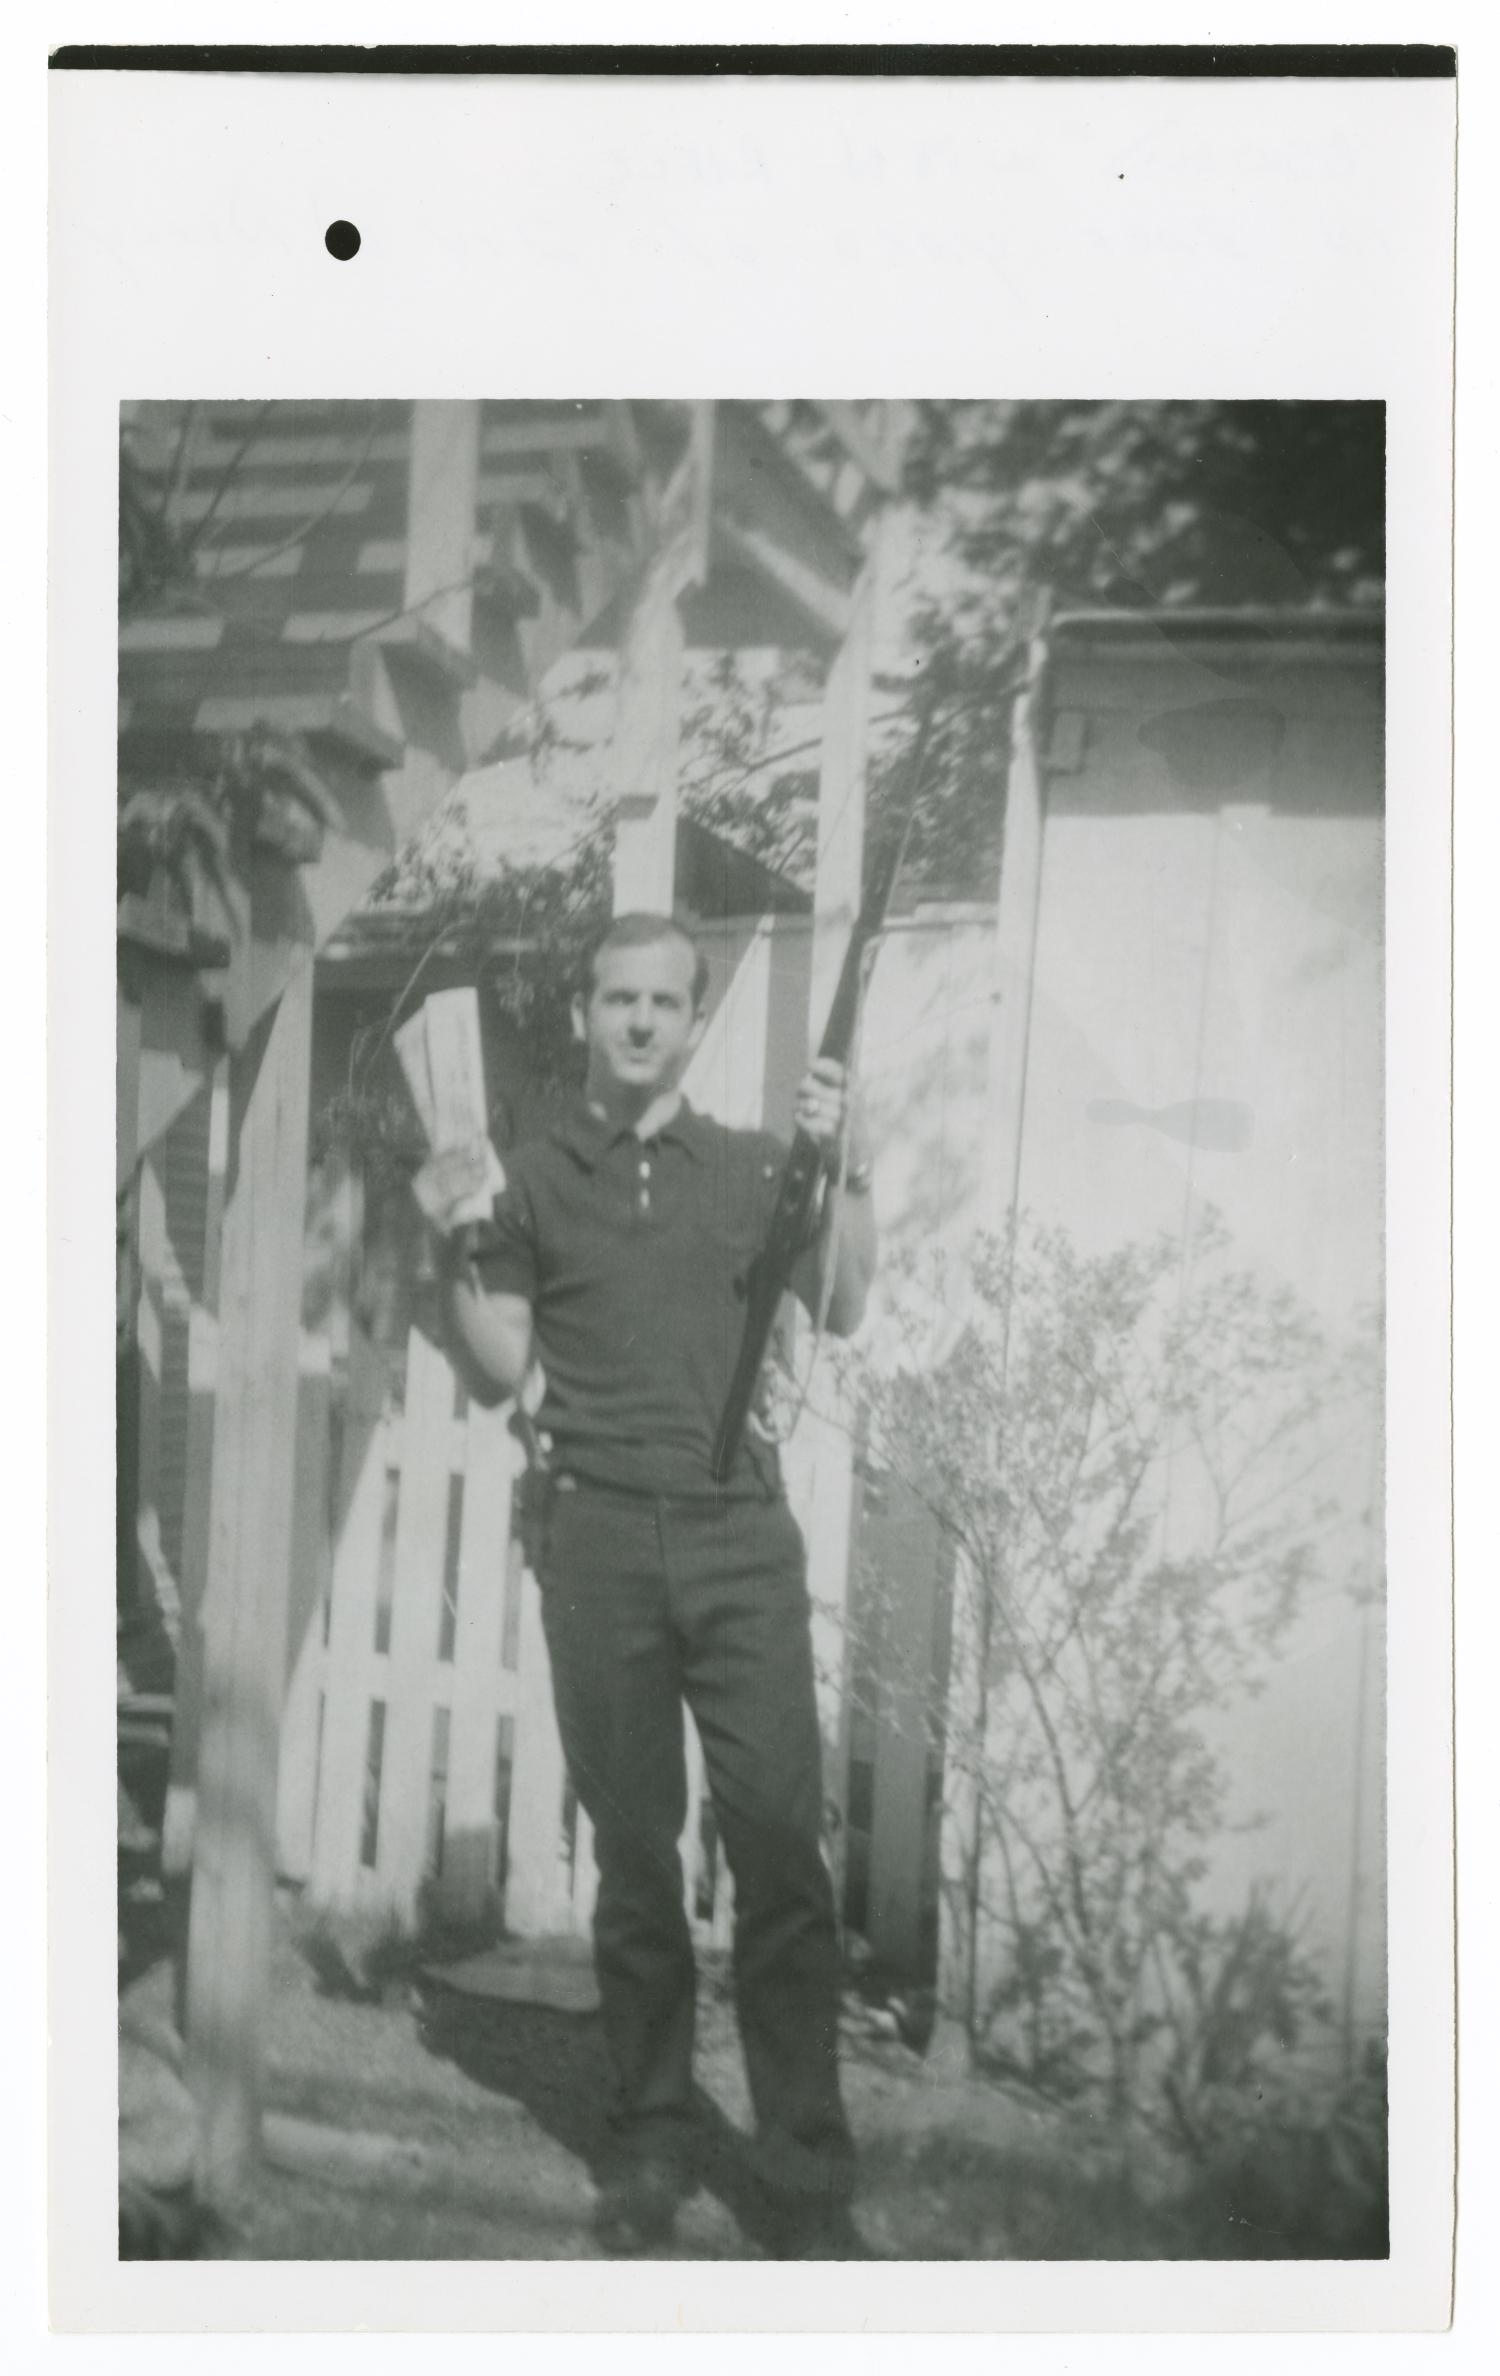 Lee Harvey Oswald in Backyard With Rifle #1 - Side 3 of ...